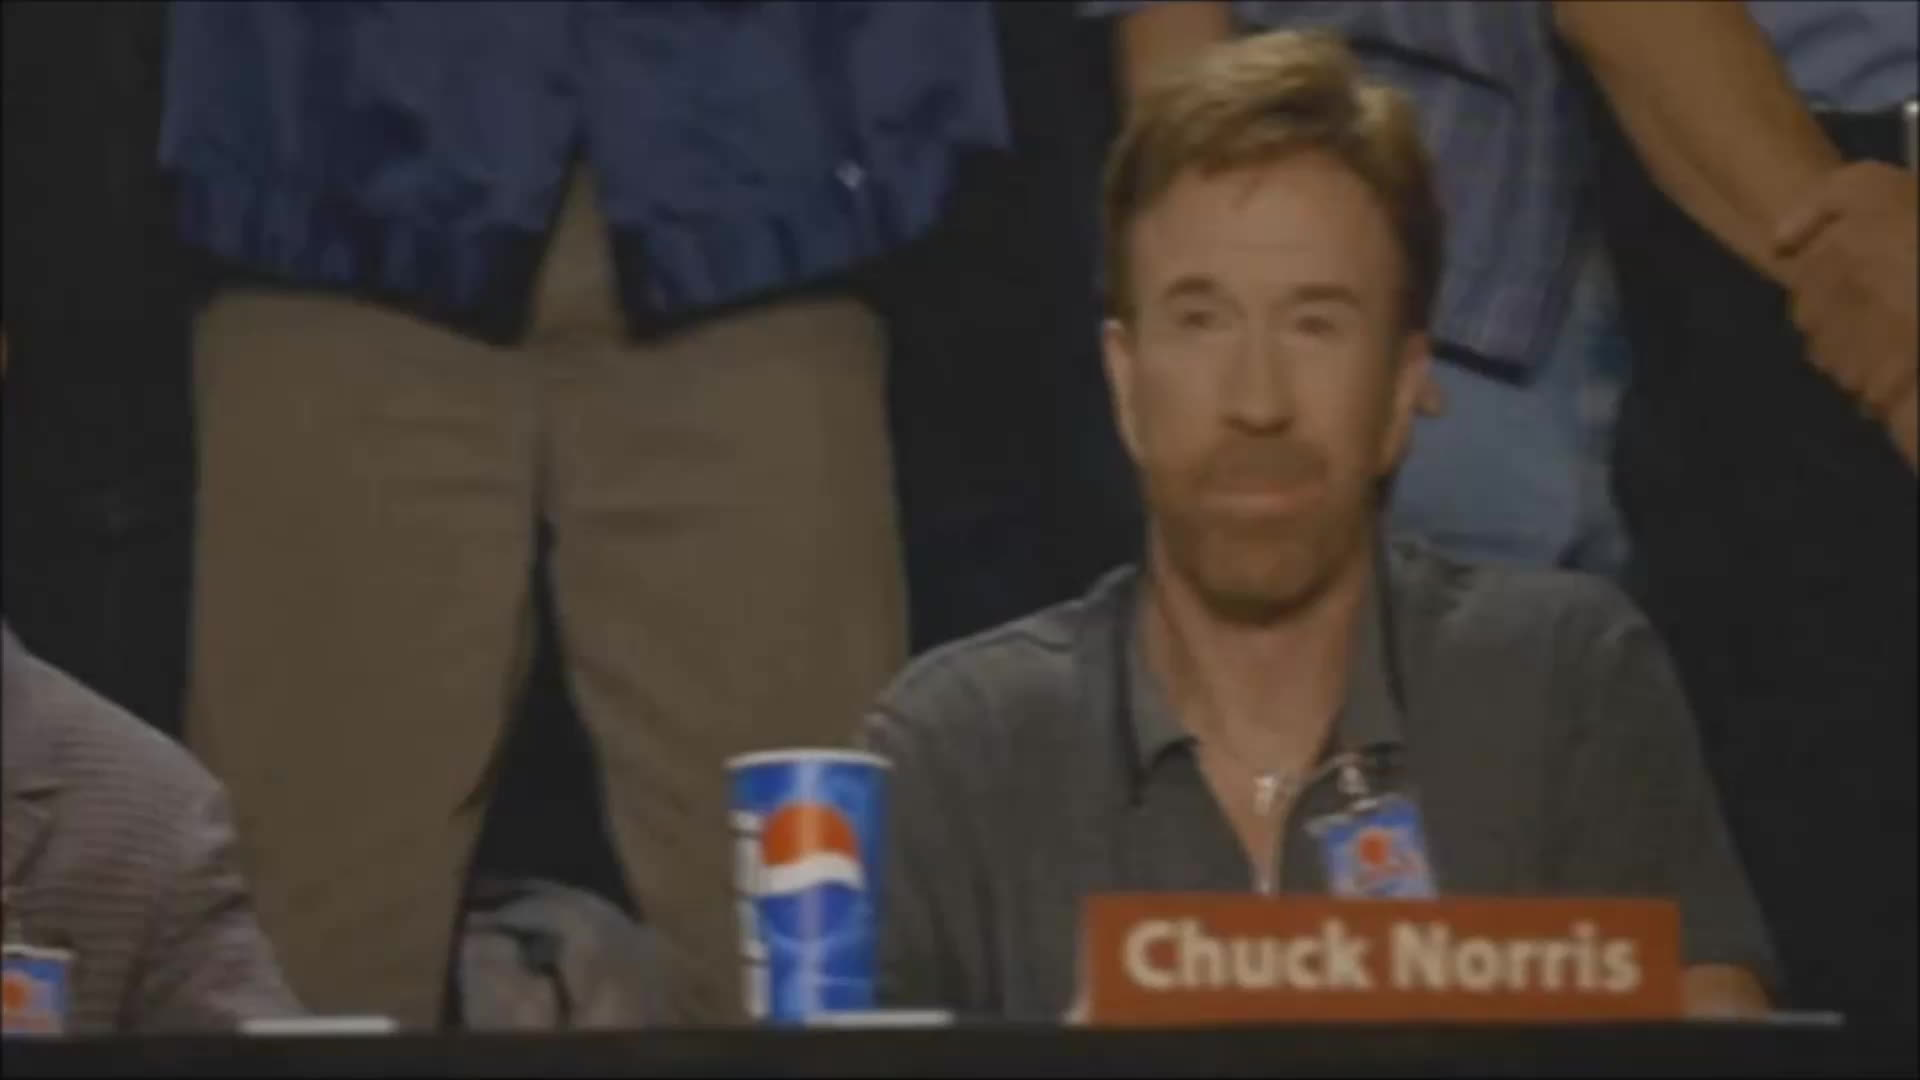 awesome, chucknorris, thumbsup, Awesome GIFs